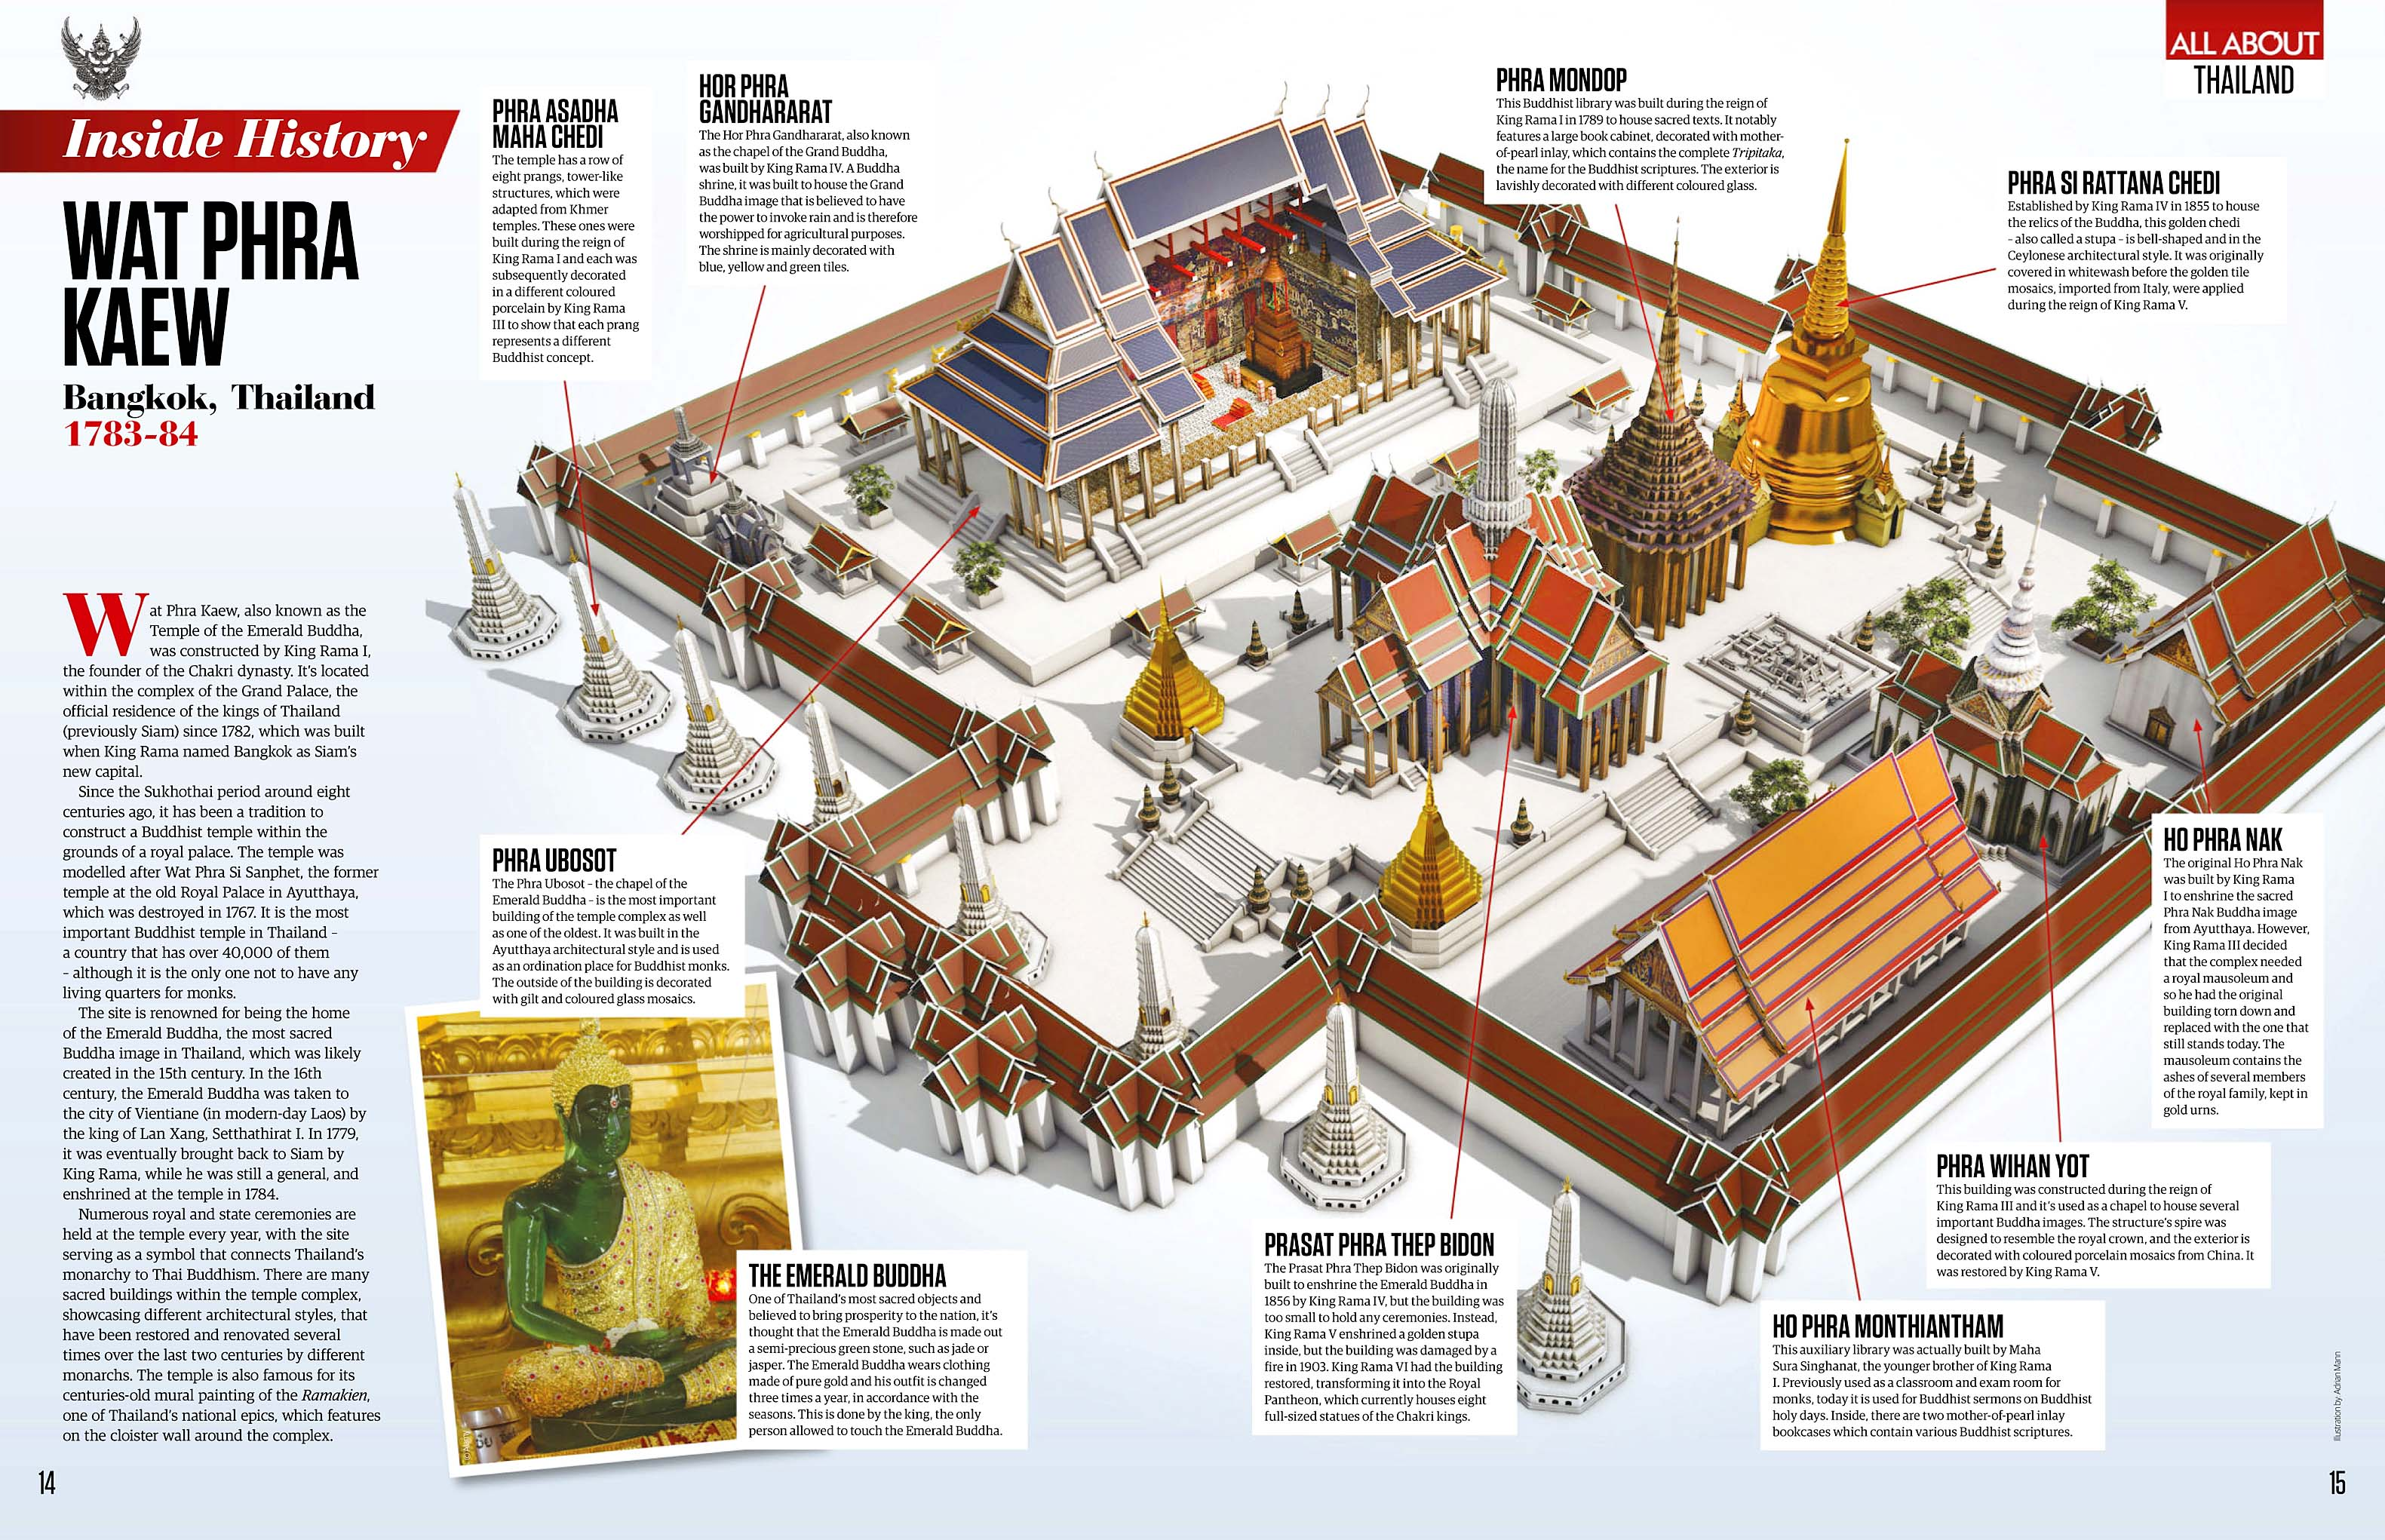 All About History 102 2021 Thai 03.jpg